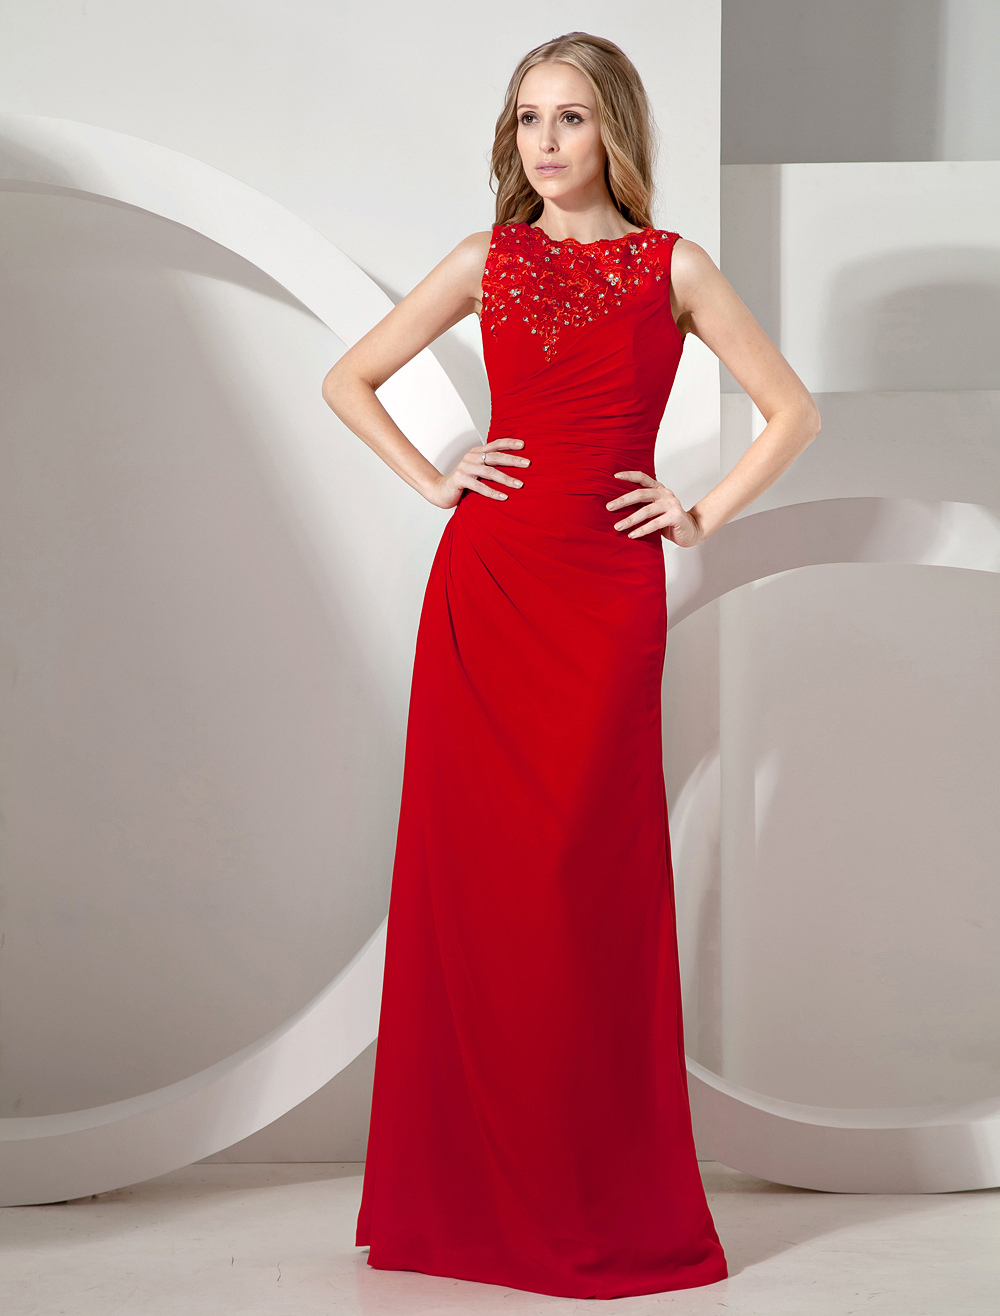 Red Floor-Length Chiffon Women's Evening Dress with Sequins on Embroidery